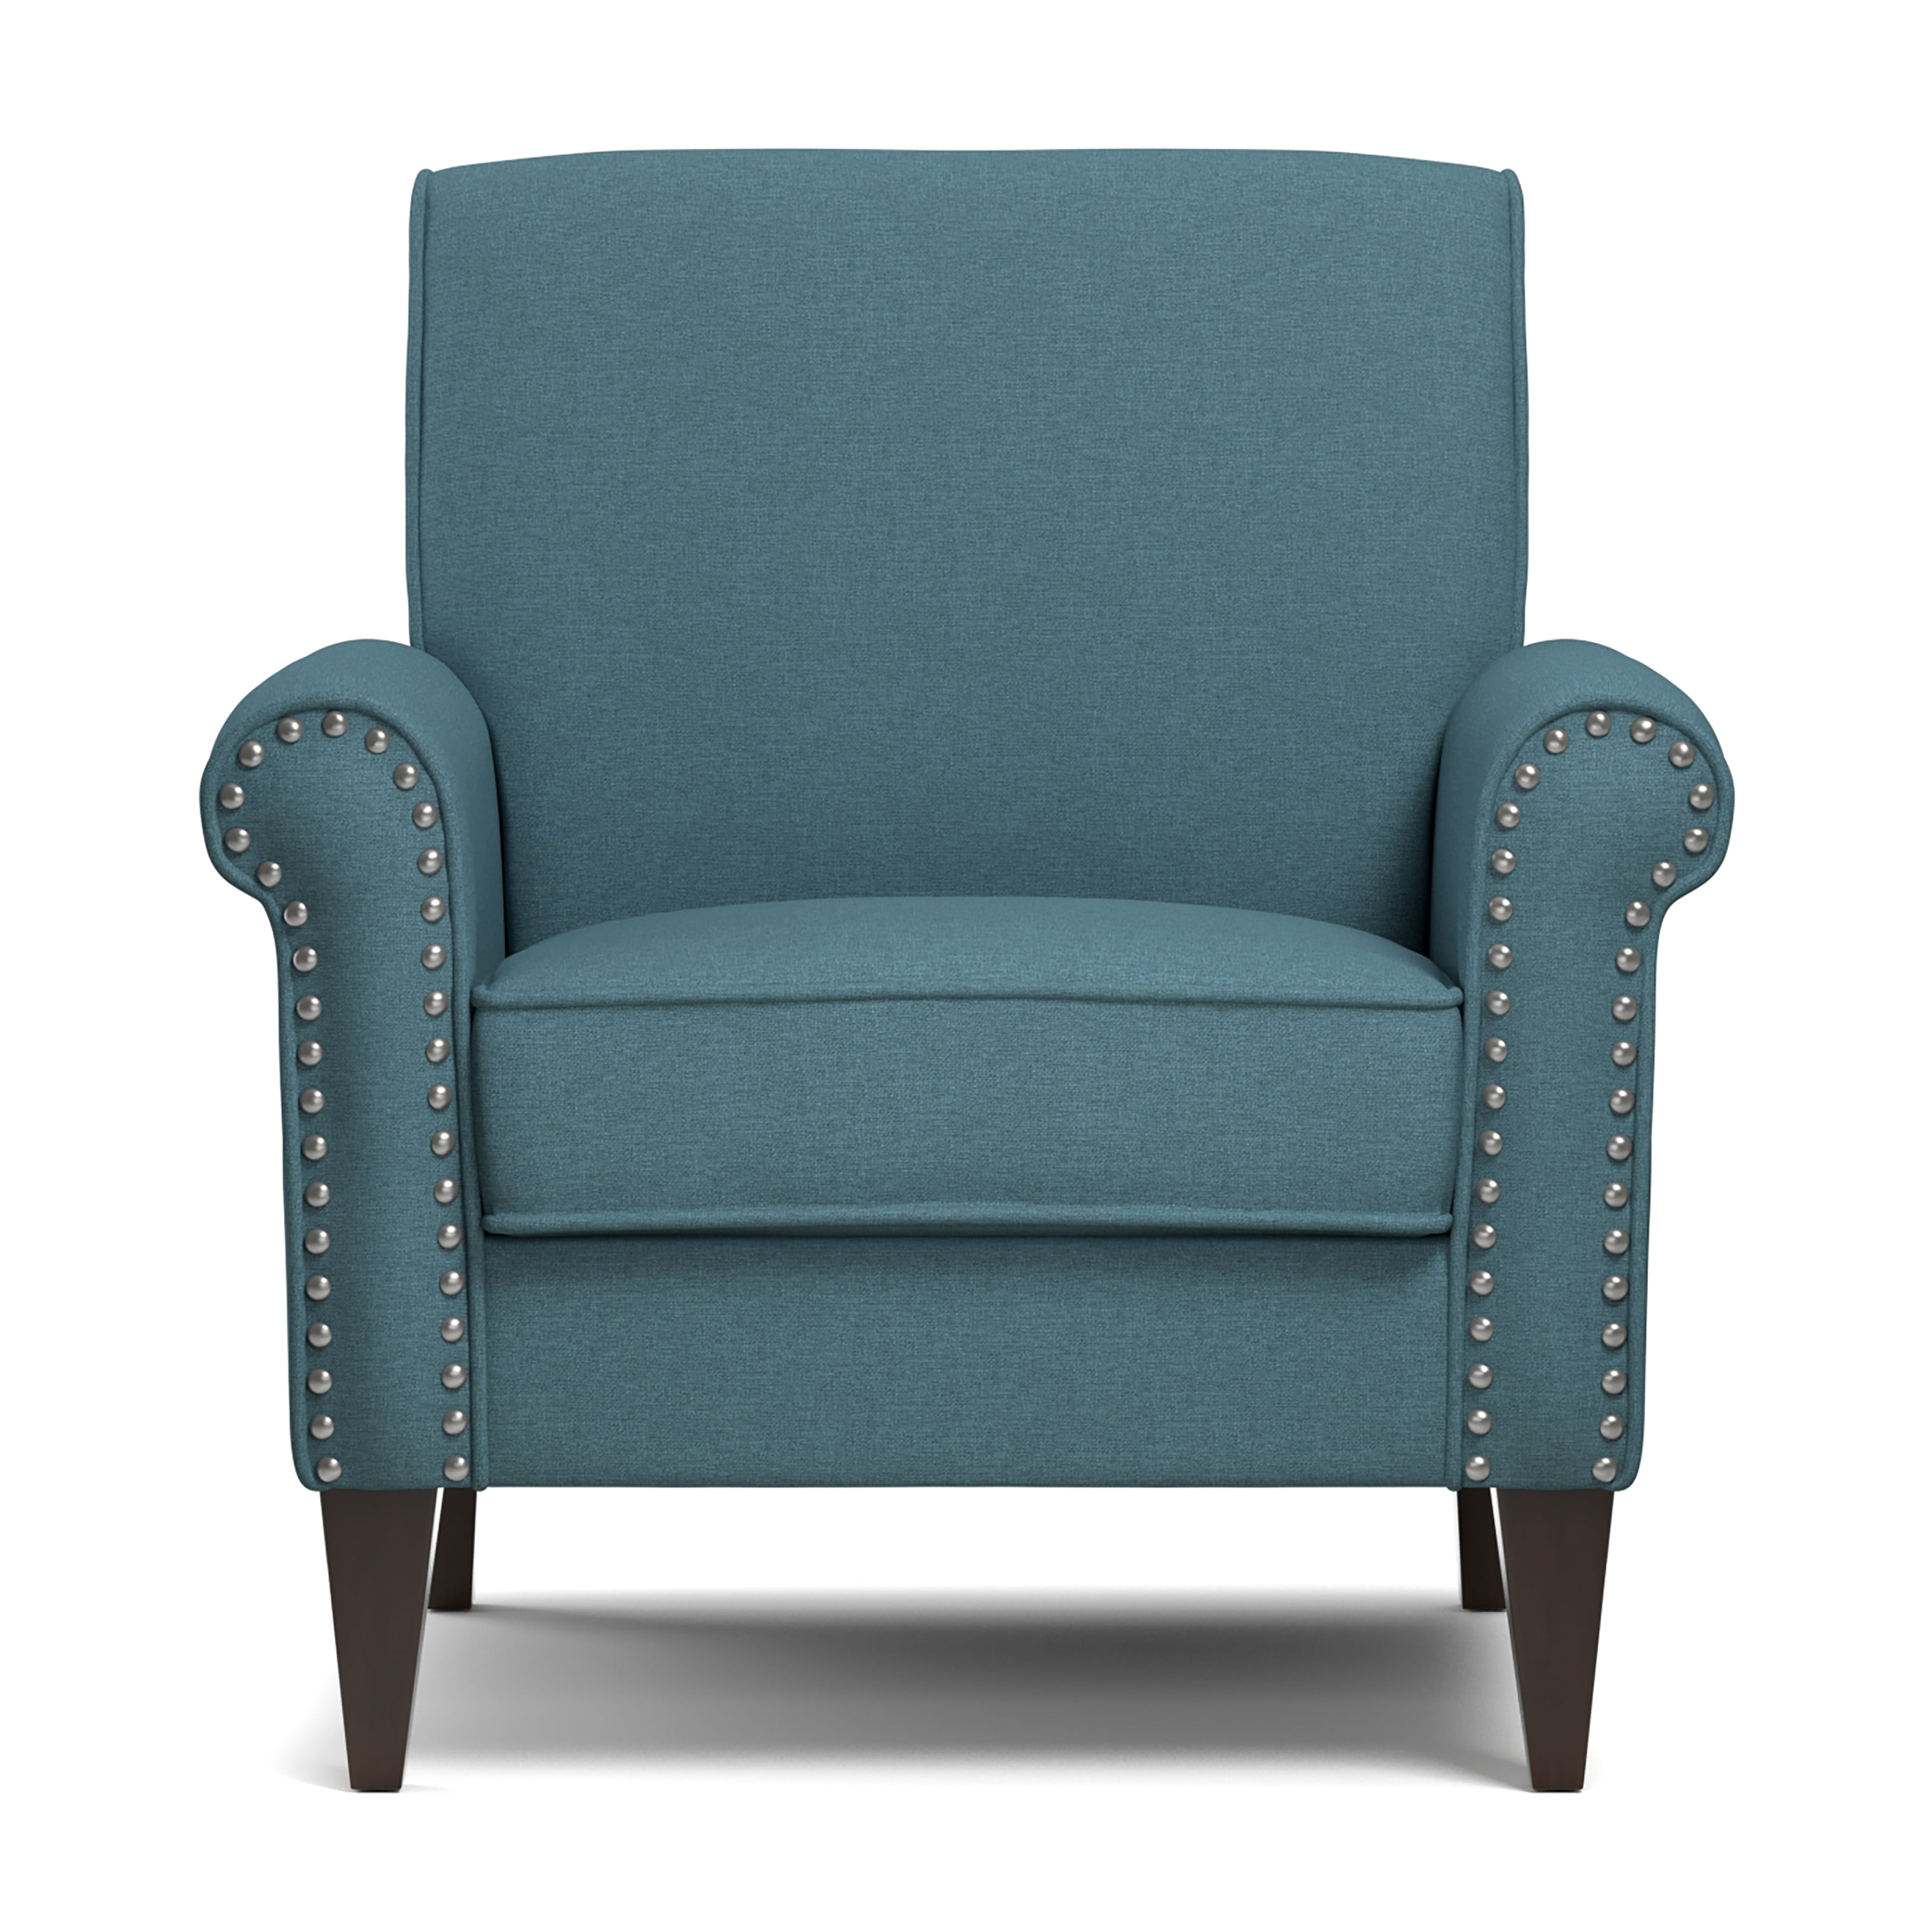 Blue Modern Accent Chairs.Details About Jean Arm Chair Linen Traditional Indoor Modern Accent Chair Caribbean Blue